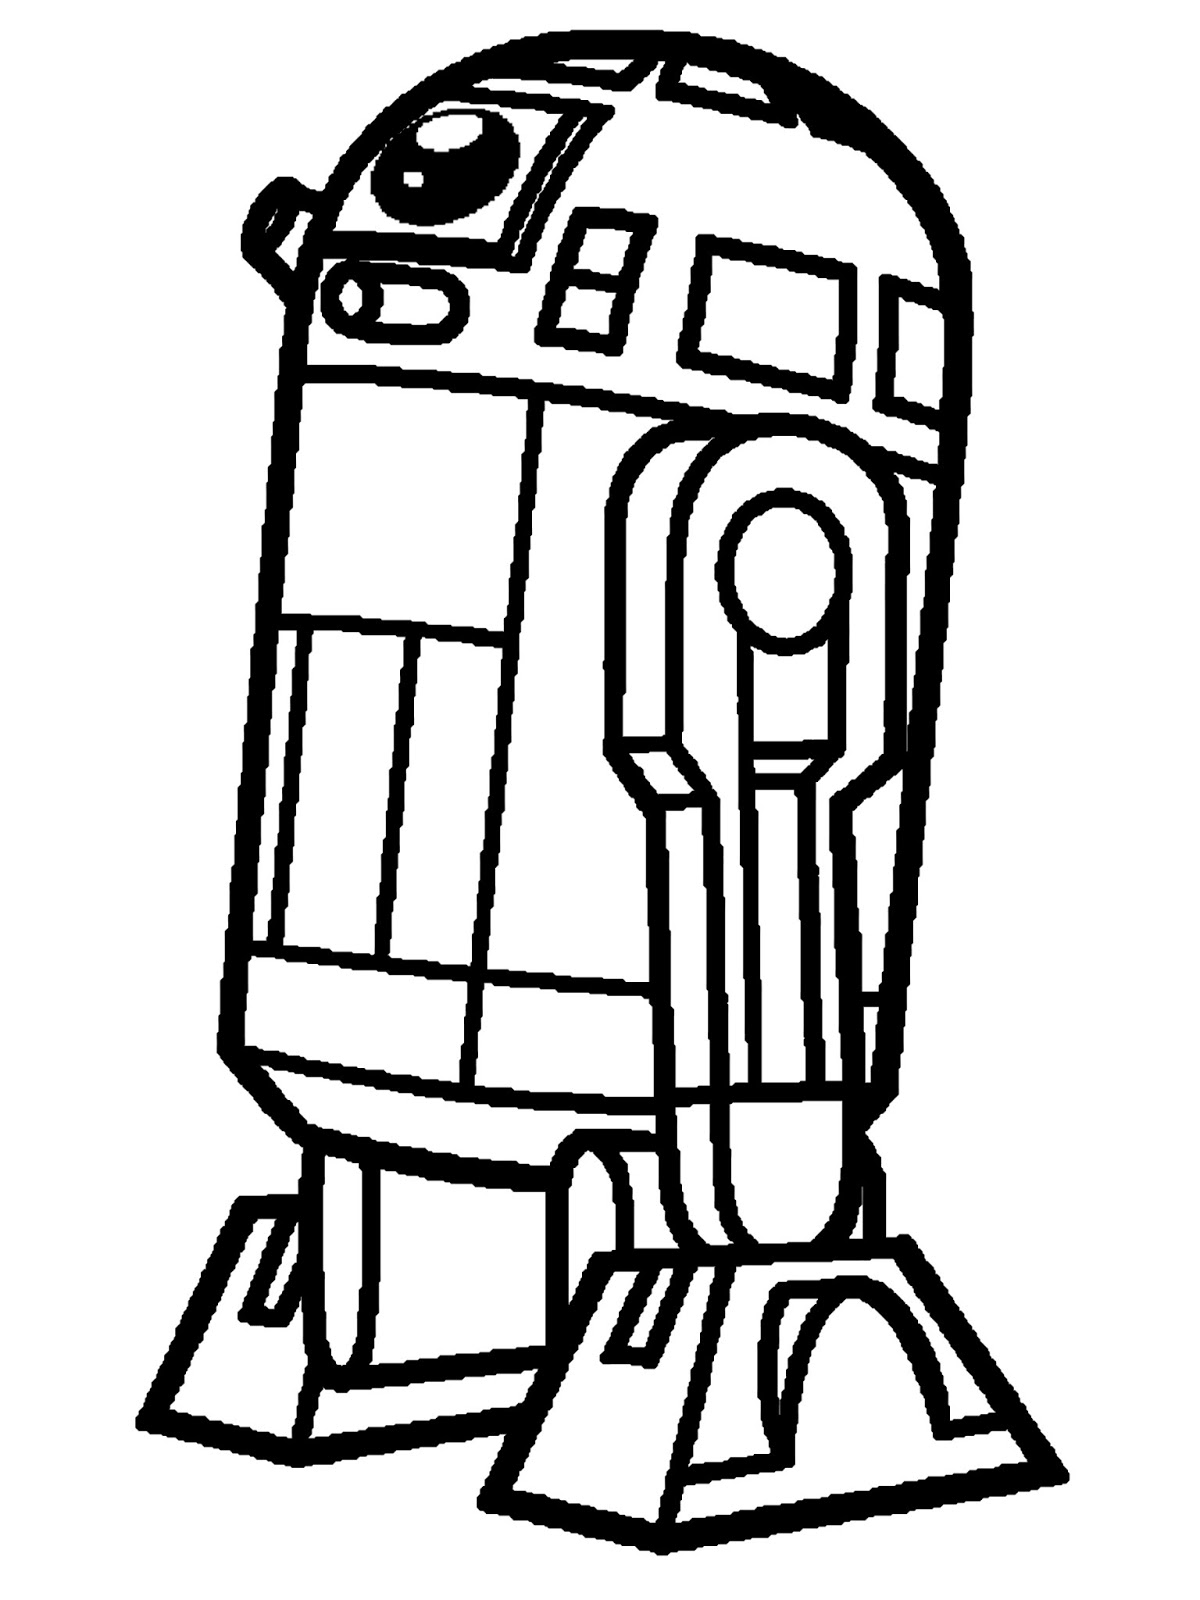 R2d2 Black And White R2-d2 Characters Clipa...